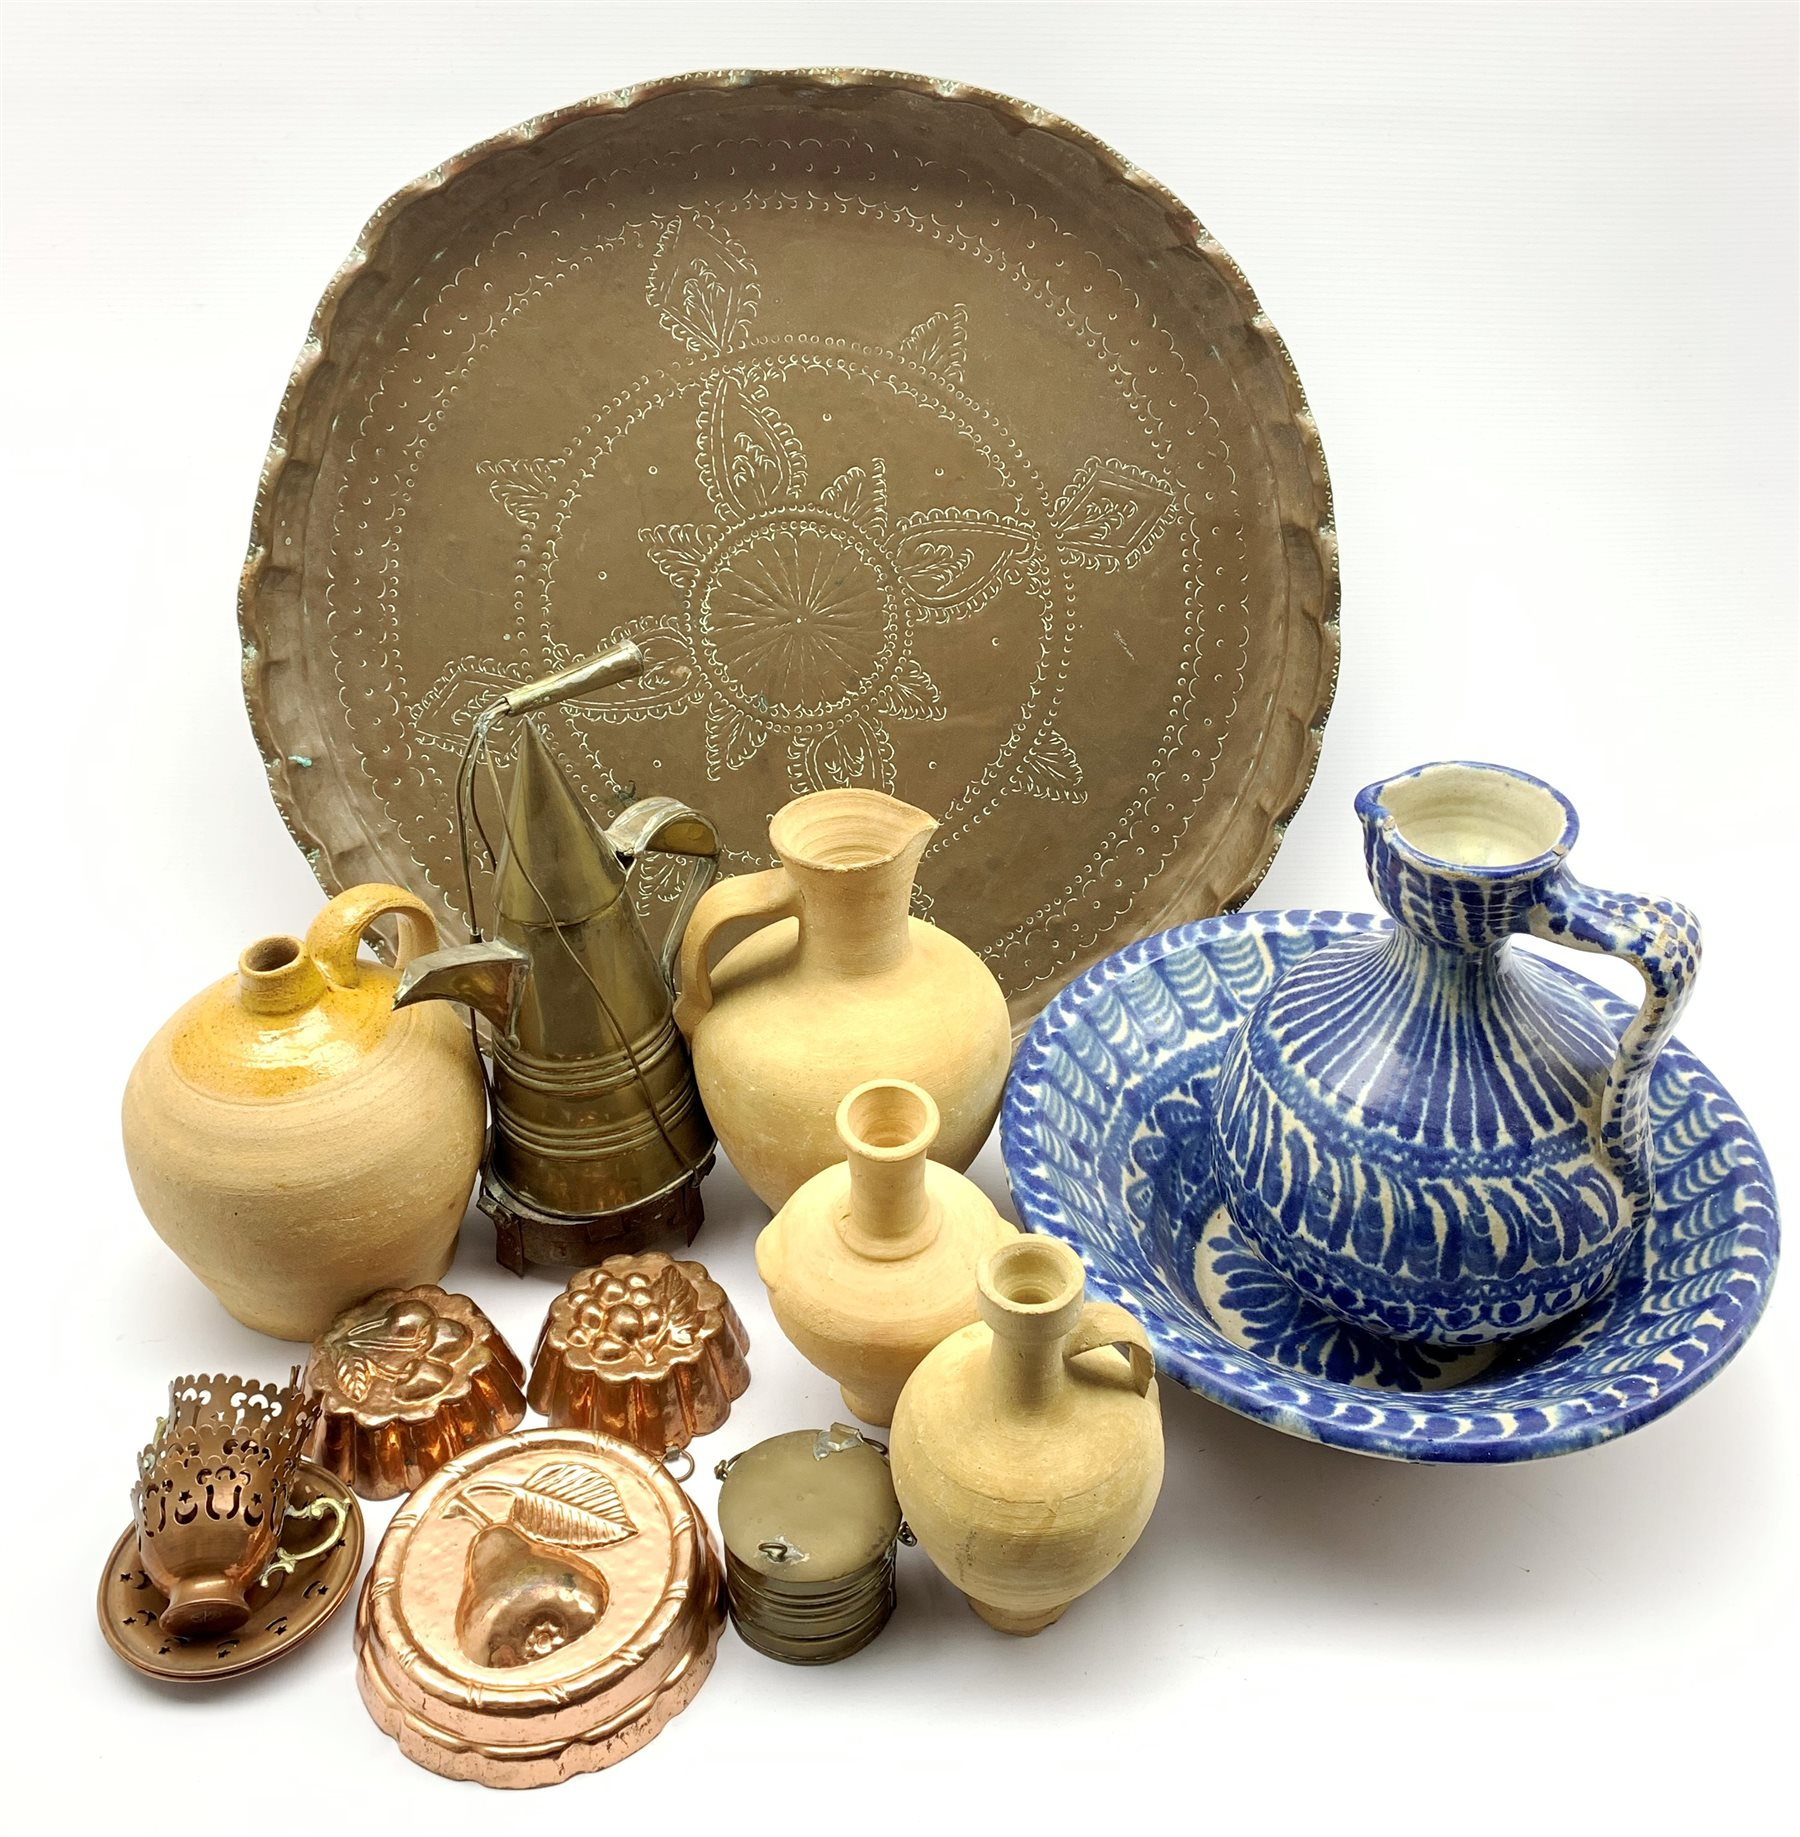 Moroccan earthenware blue and white ewer and basin, four terracotta jars, North African brass coffee